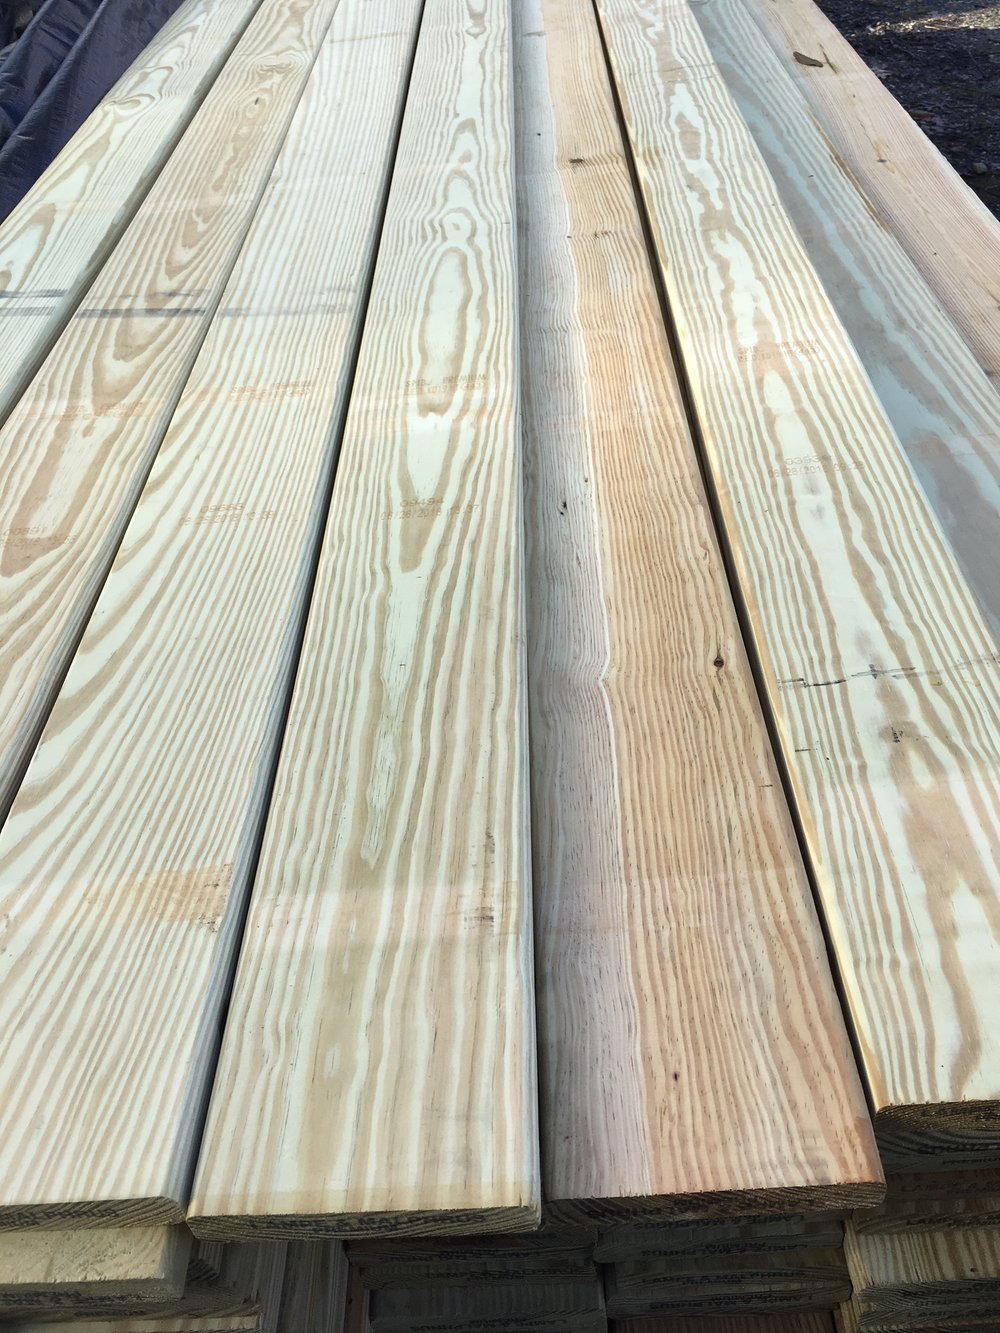 treated decking2.JPG